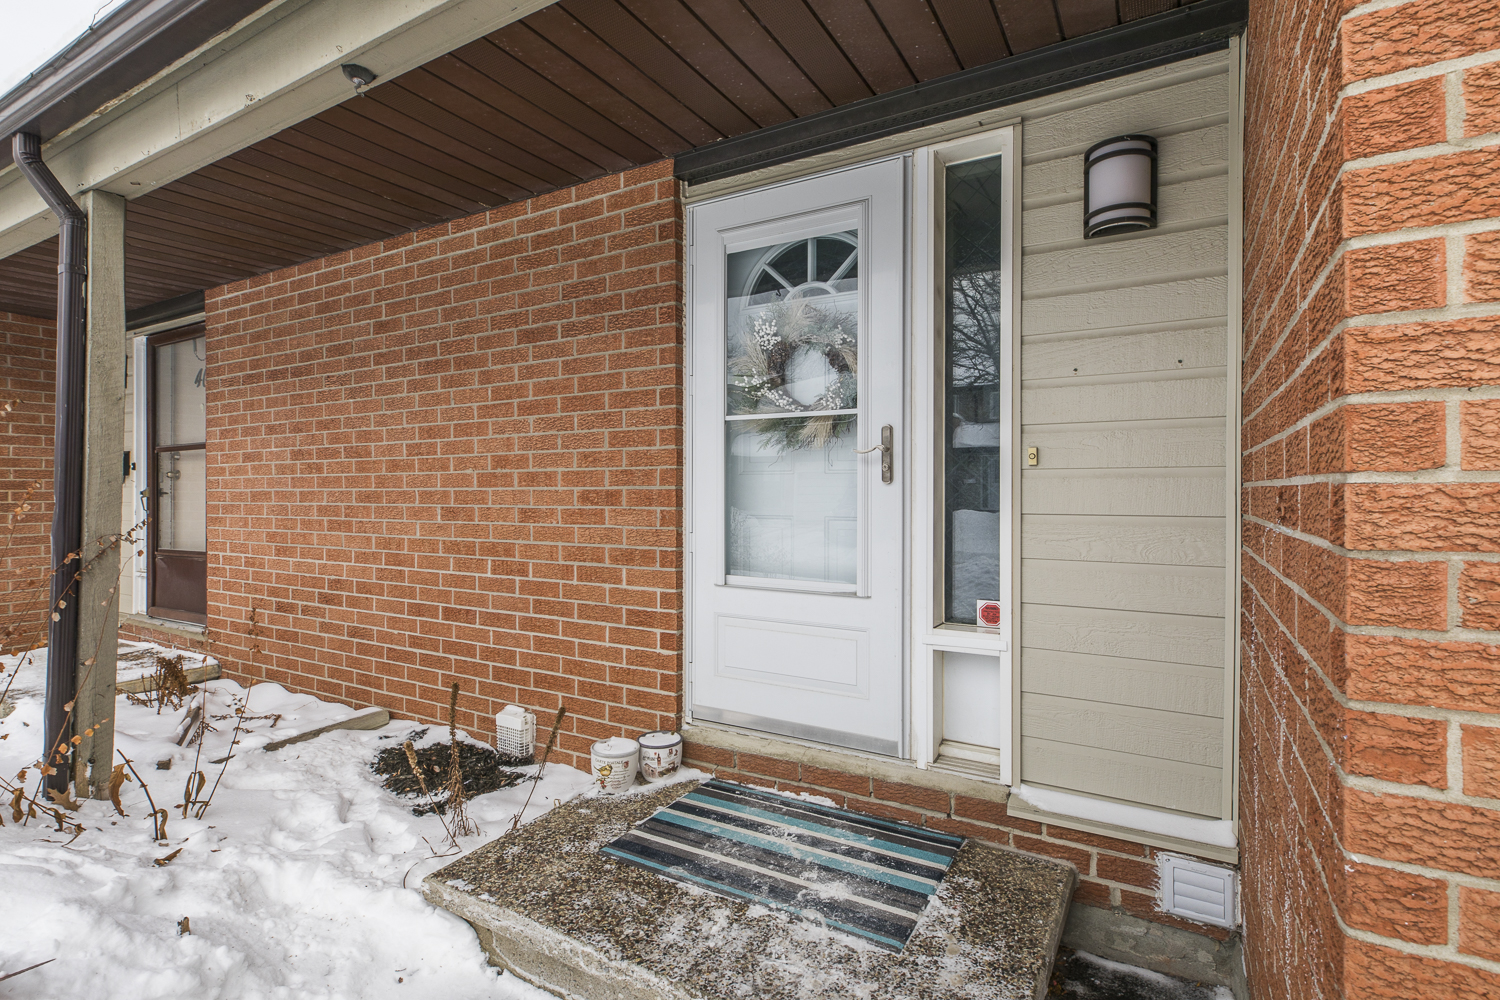 41-3205 Uplands Dr. | Spacious townhome in family friendly neighbourhood